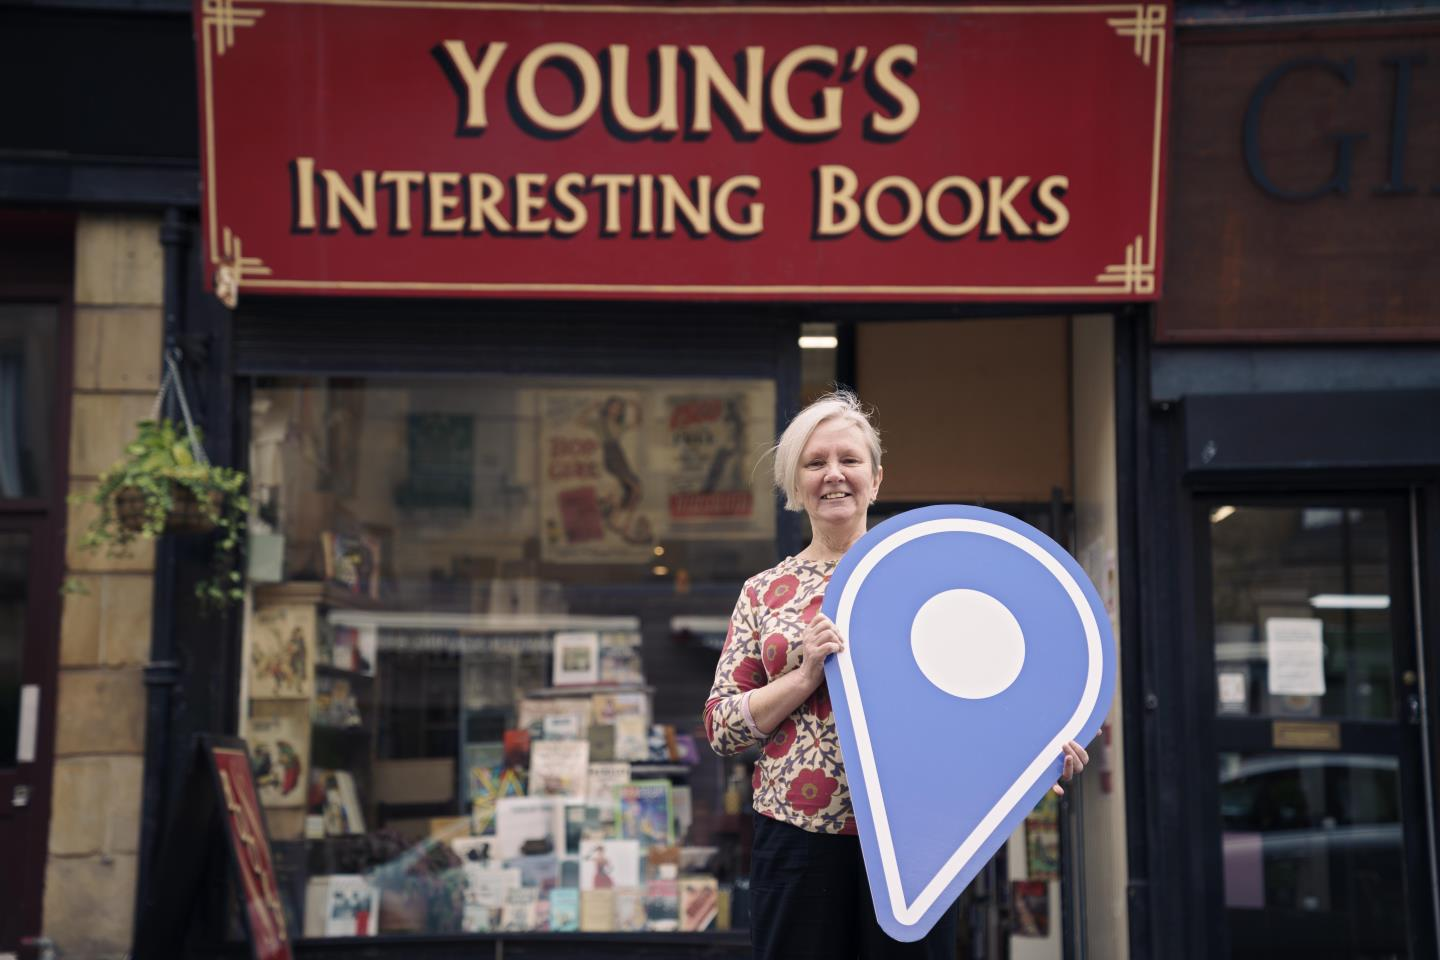 Noelle Carroll of Young's Interesting Books, Shawlands, Glasgow. Part of Scotland Loves Local.